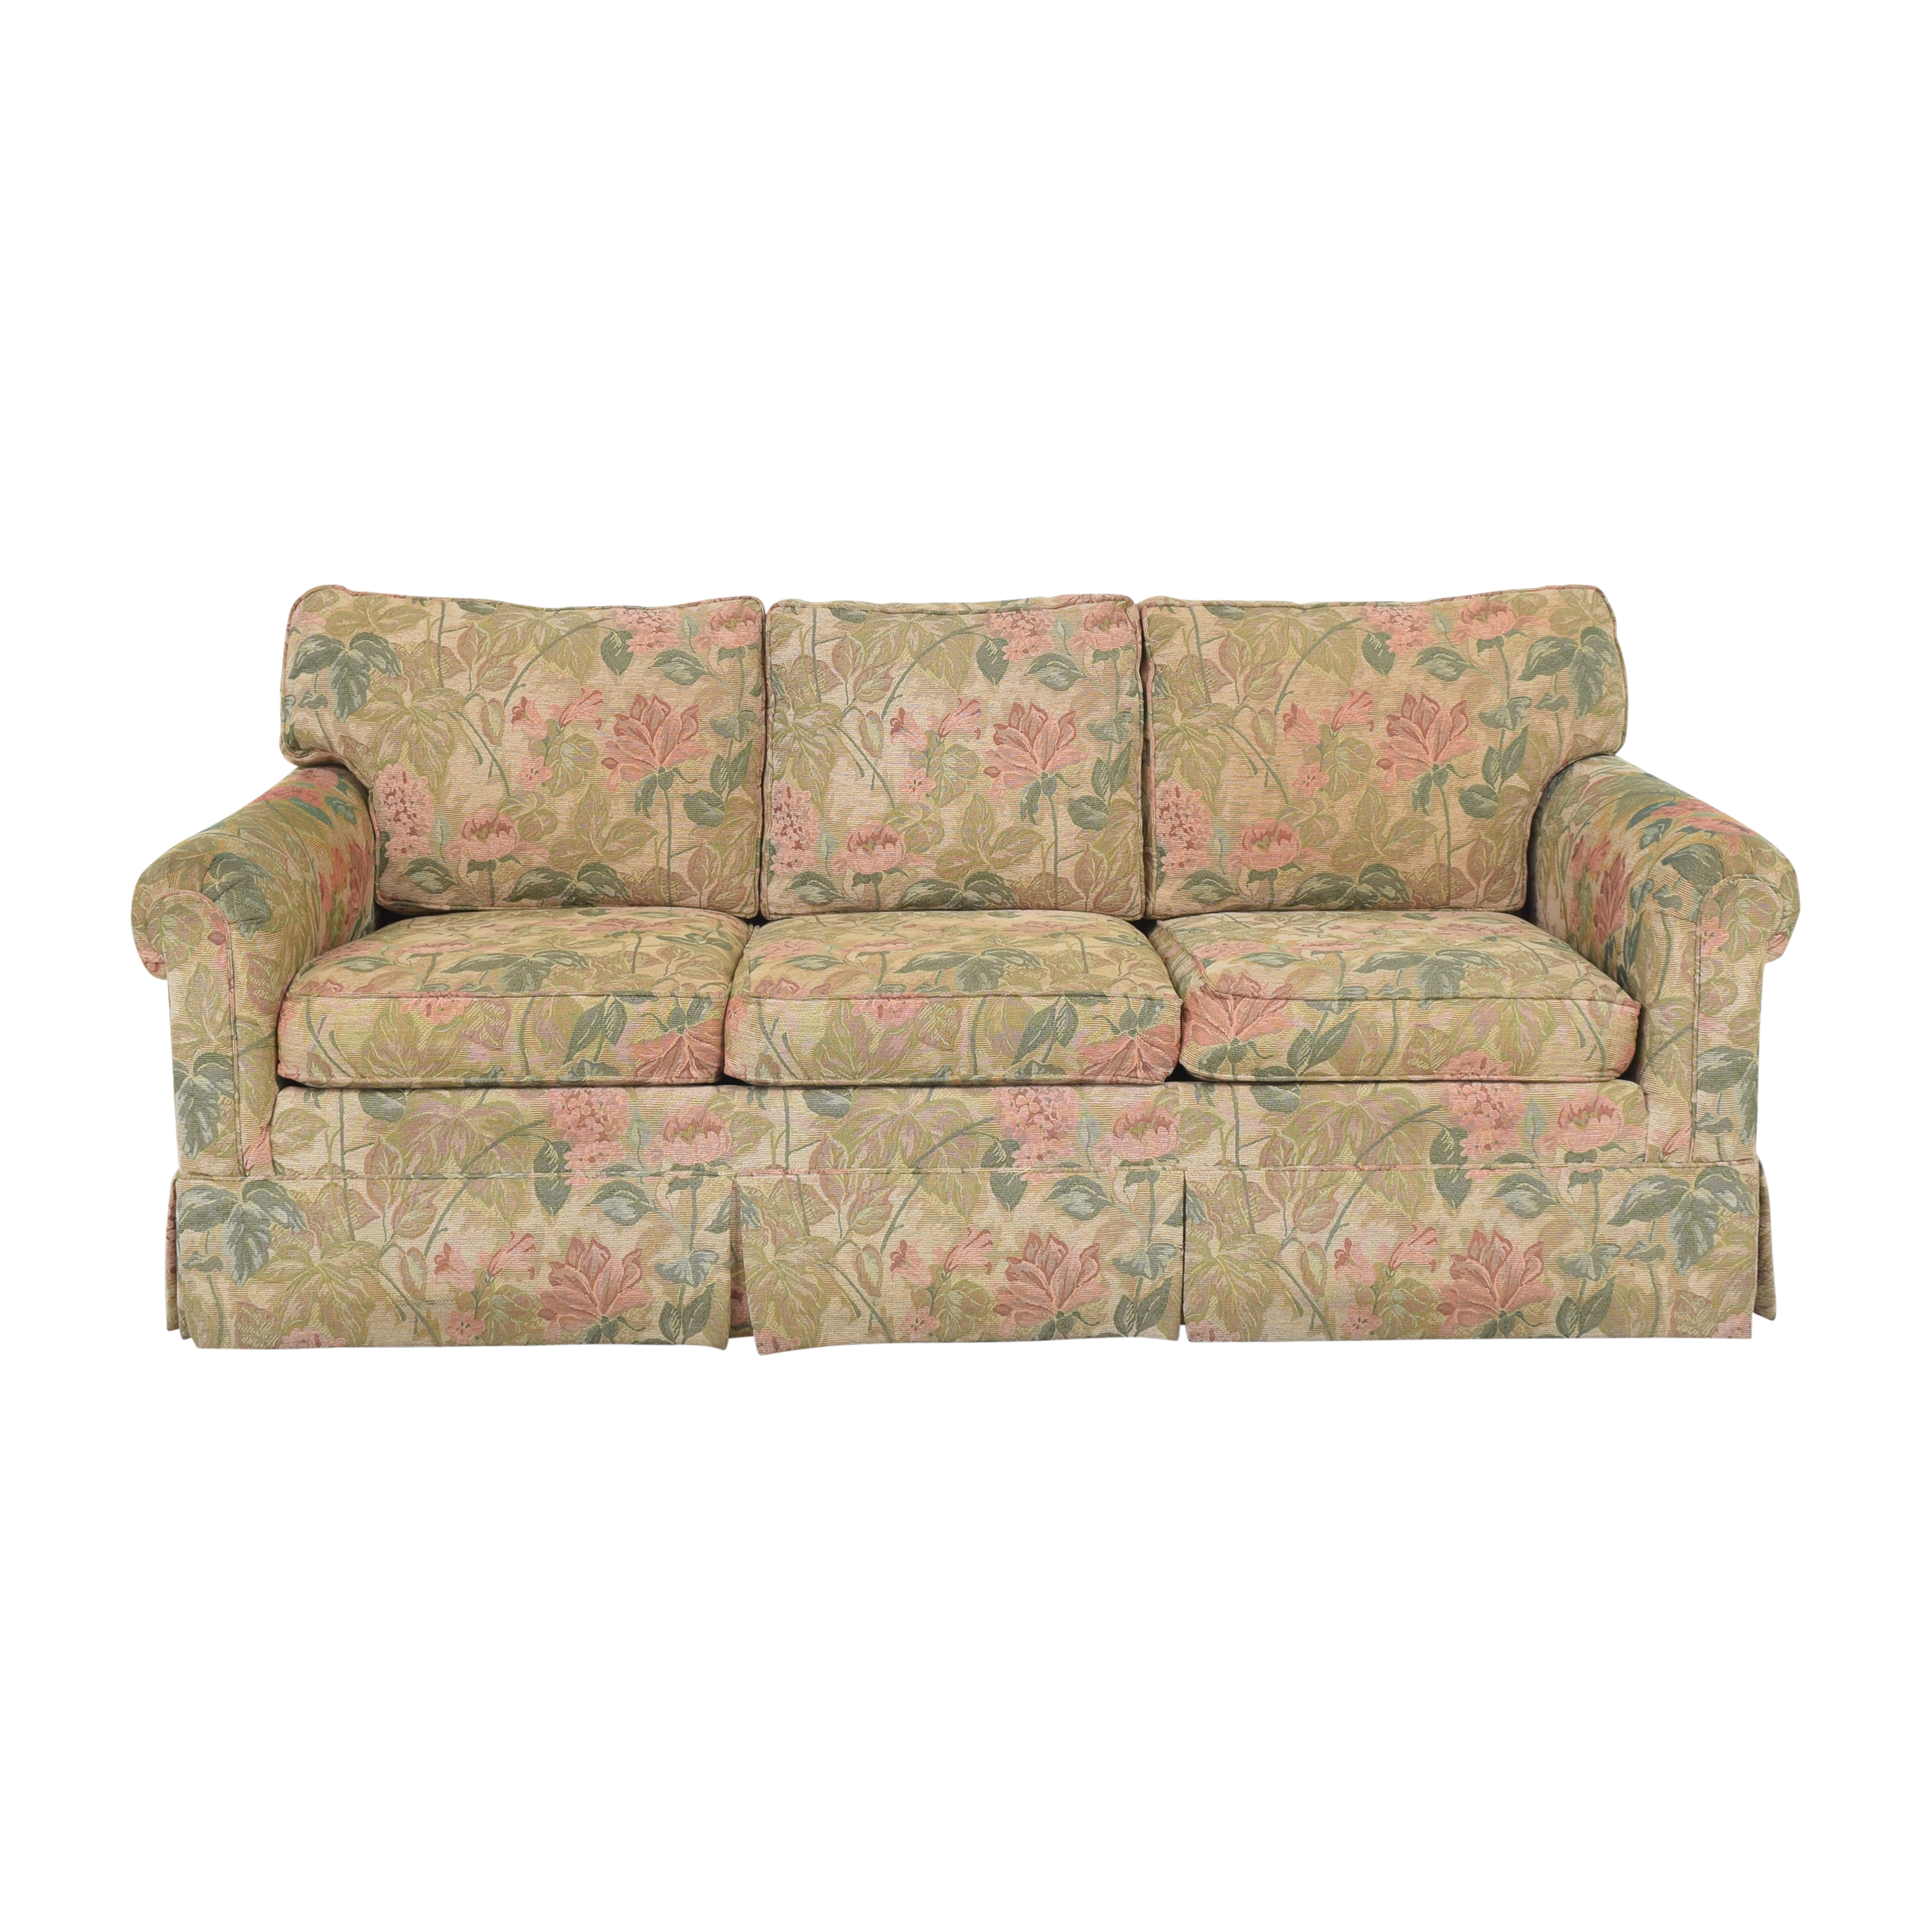 Ethan Allen Ethan Allen Floral Skirted Sofa nj